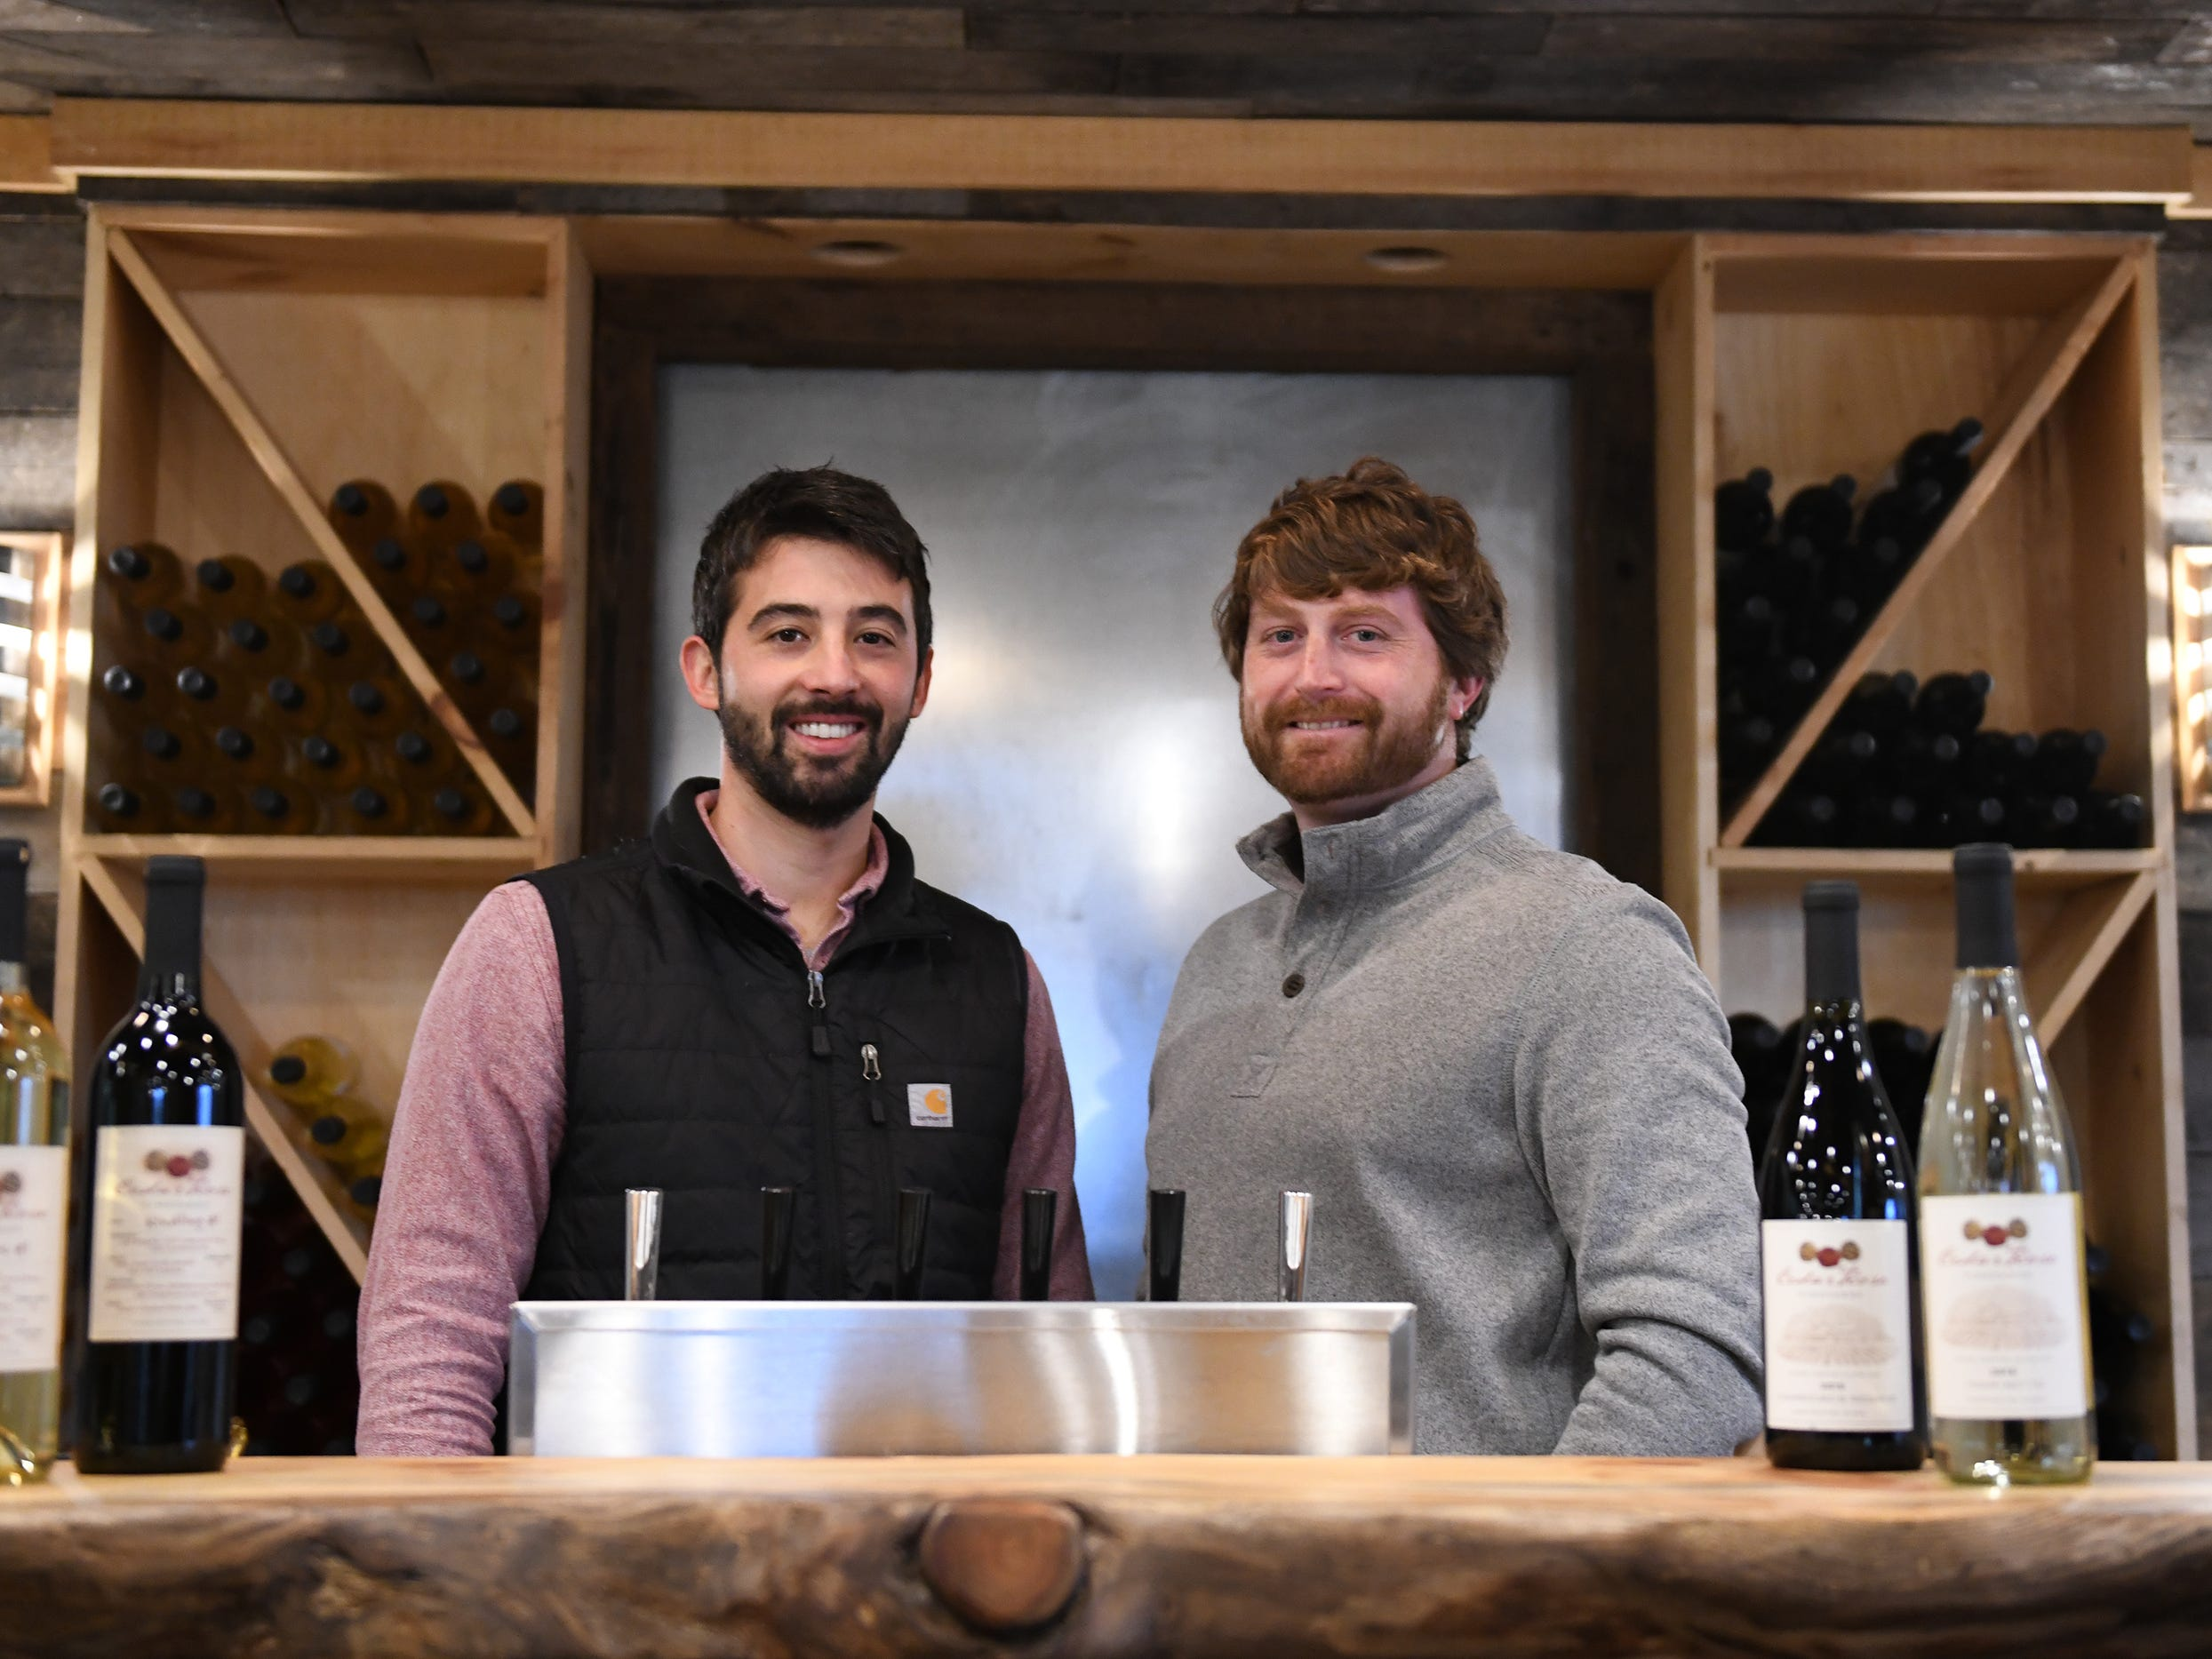 Cedar Rose Vineyards managing partners Steven Becker (left) and Dustin Tarpine stand behind the bar at the facilitie's tasting room in Rosenhayn on Tuesday, Jan. 8, 2019.